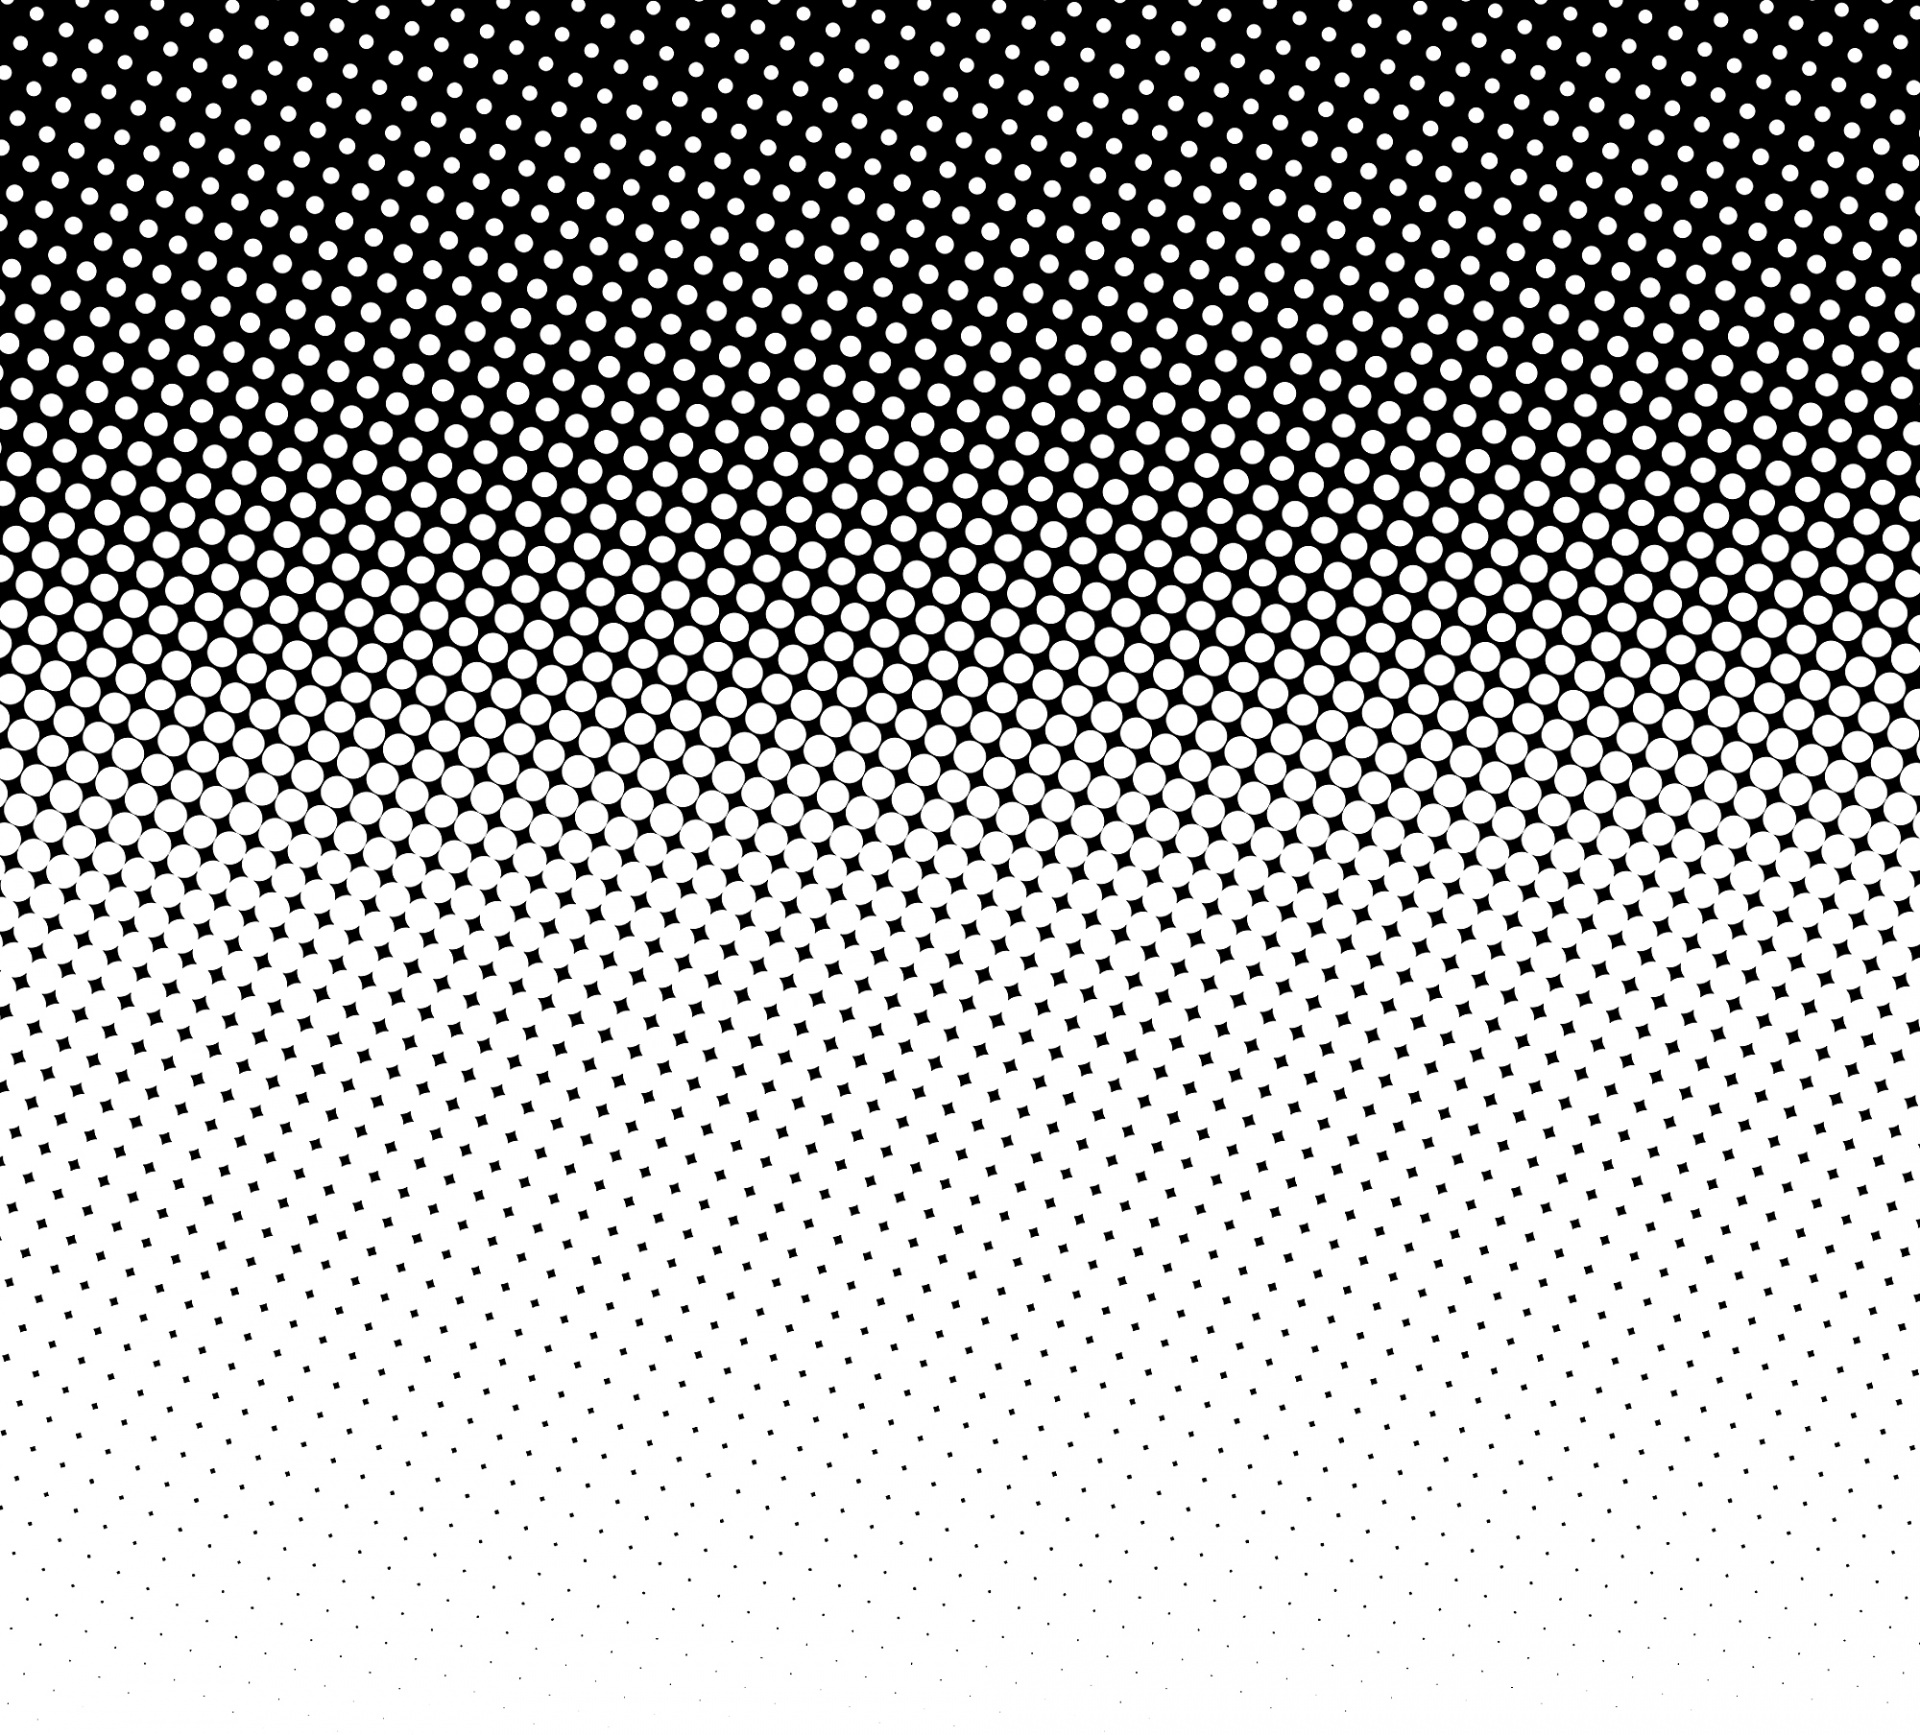 Free Snow Falling Wallpaper Pattern Half Tone 17 Free Stock Photo Public Domain Pictures